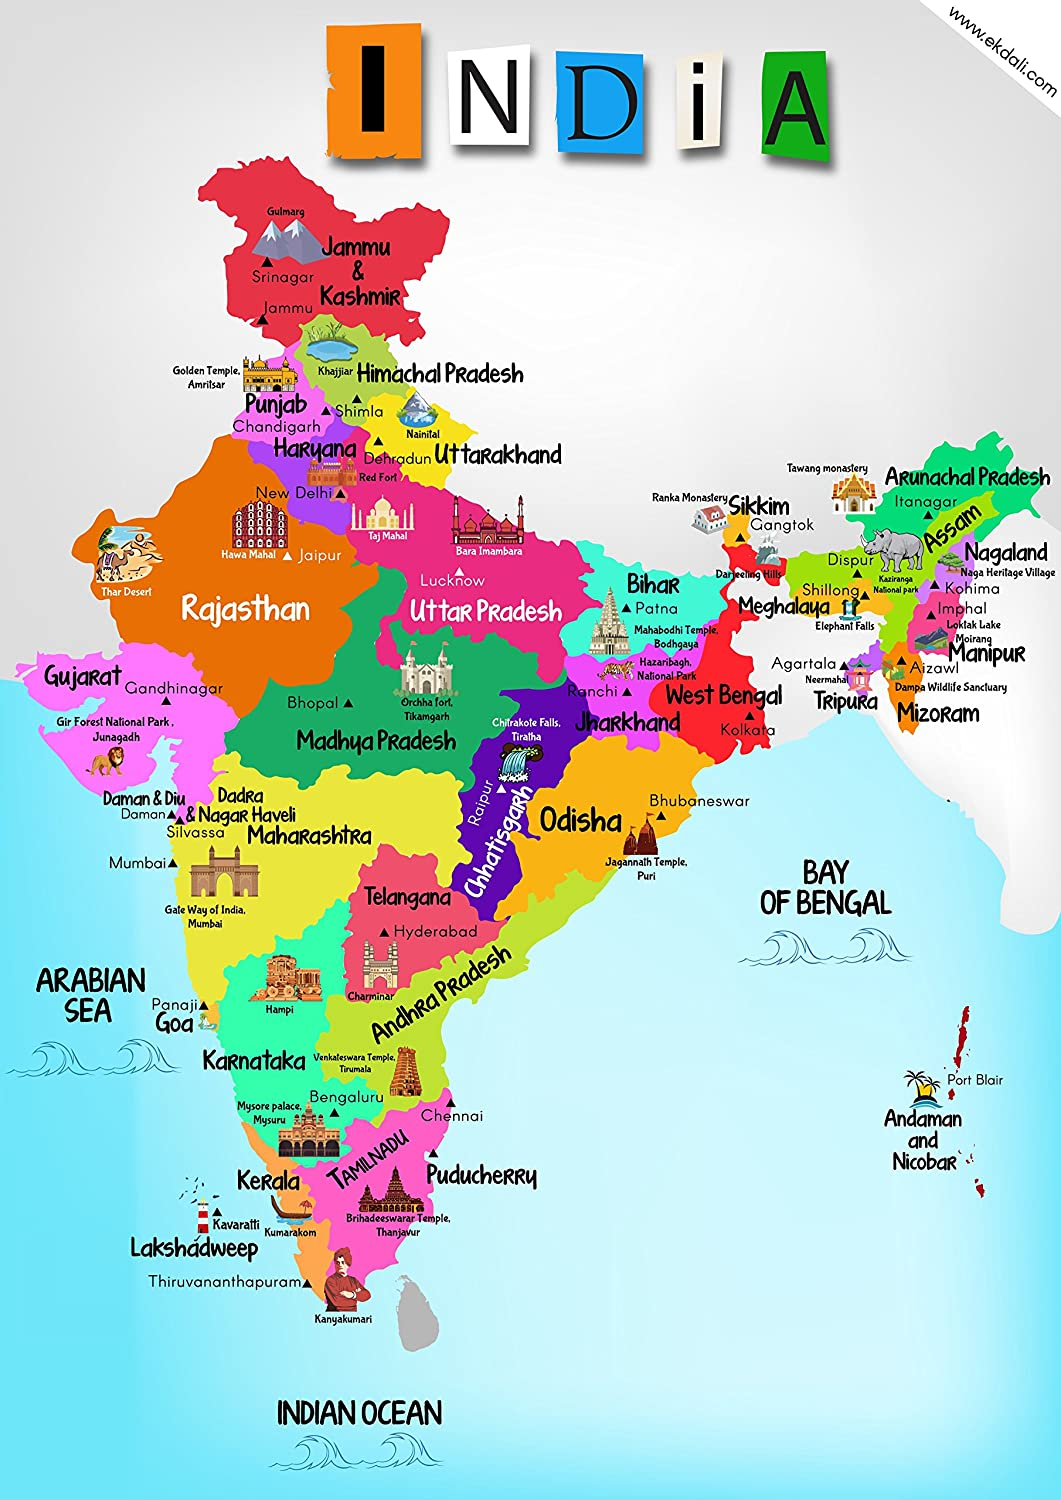 Where Is Hyderabad Located In India Map.Ekdali India Map With Monuments Paper 11 7 16 5 Inch Multicolour